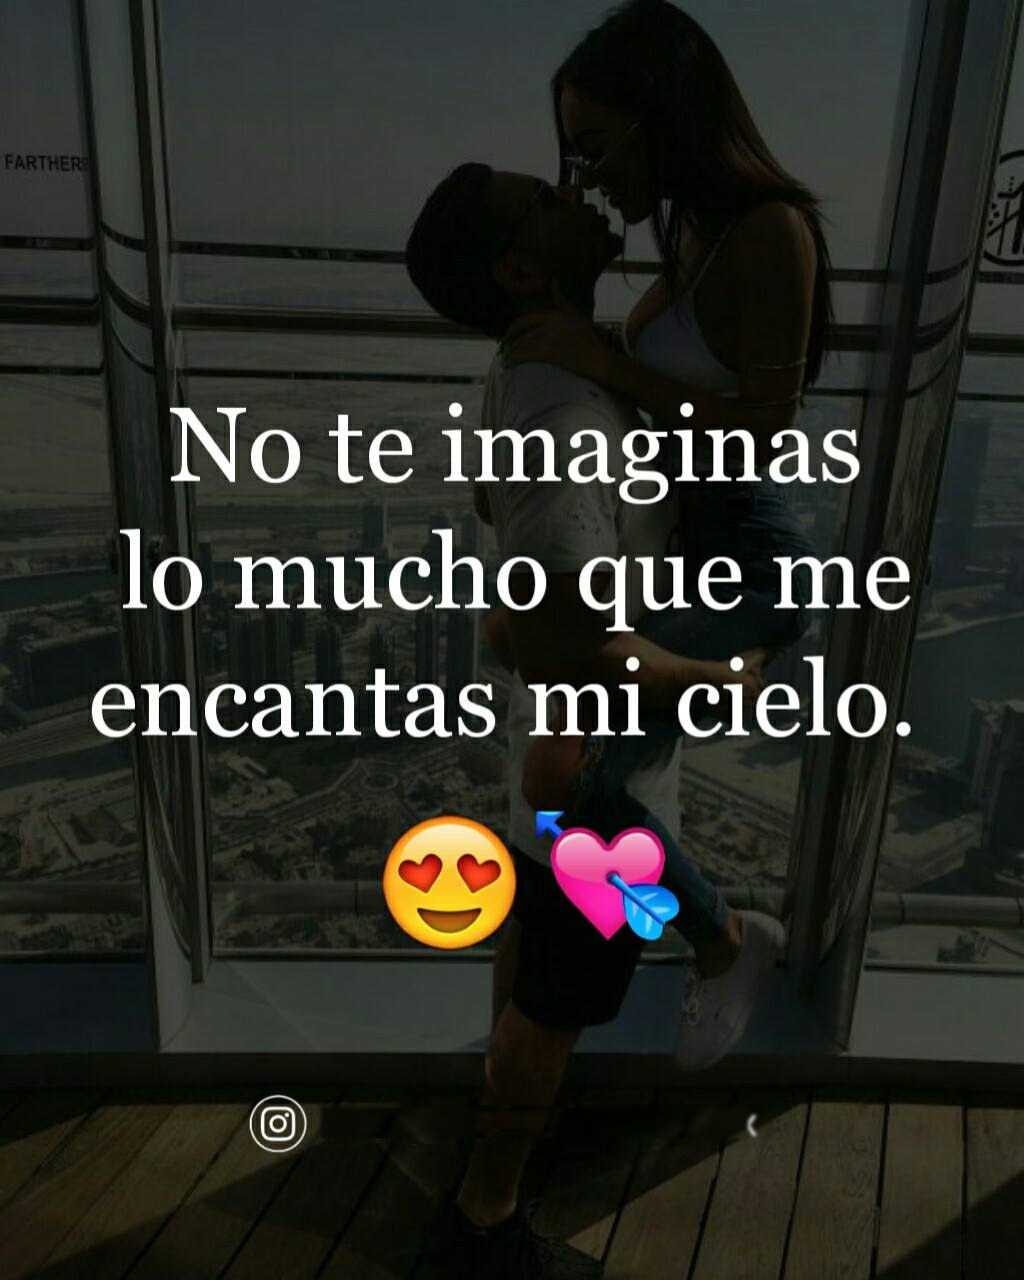 Imagenes con frases sentimentales